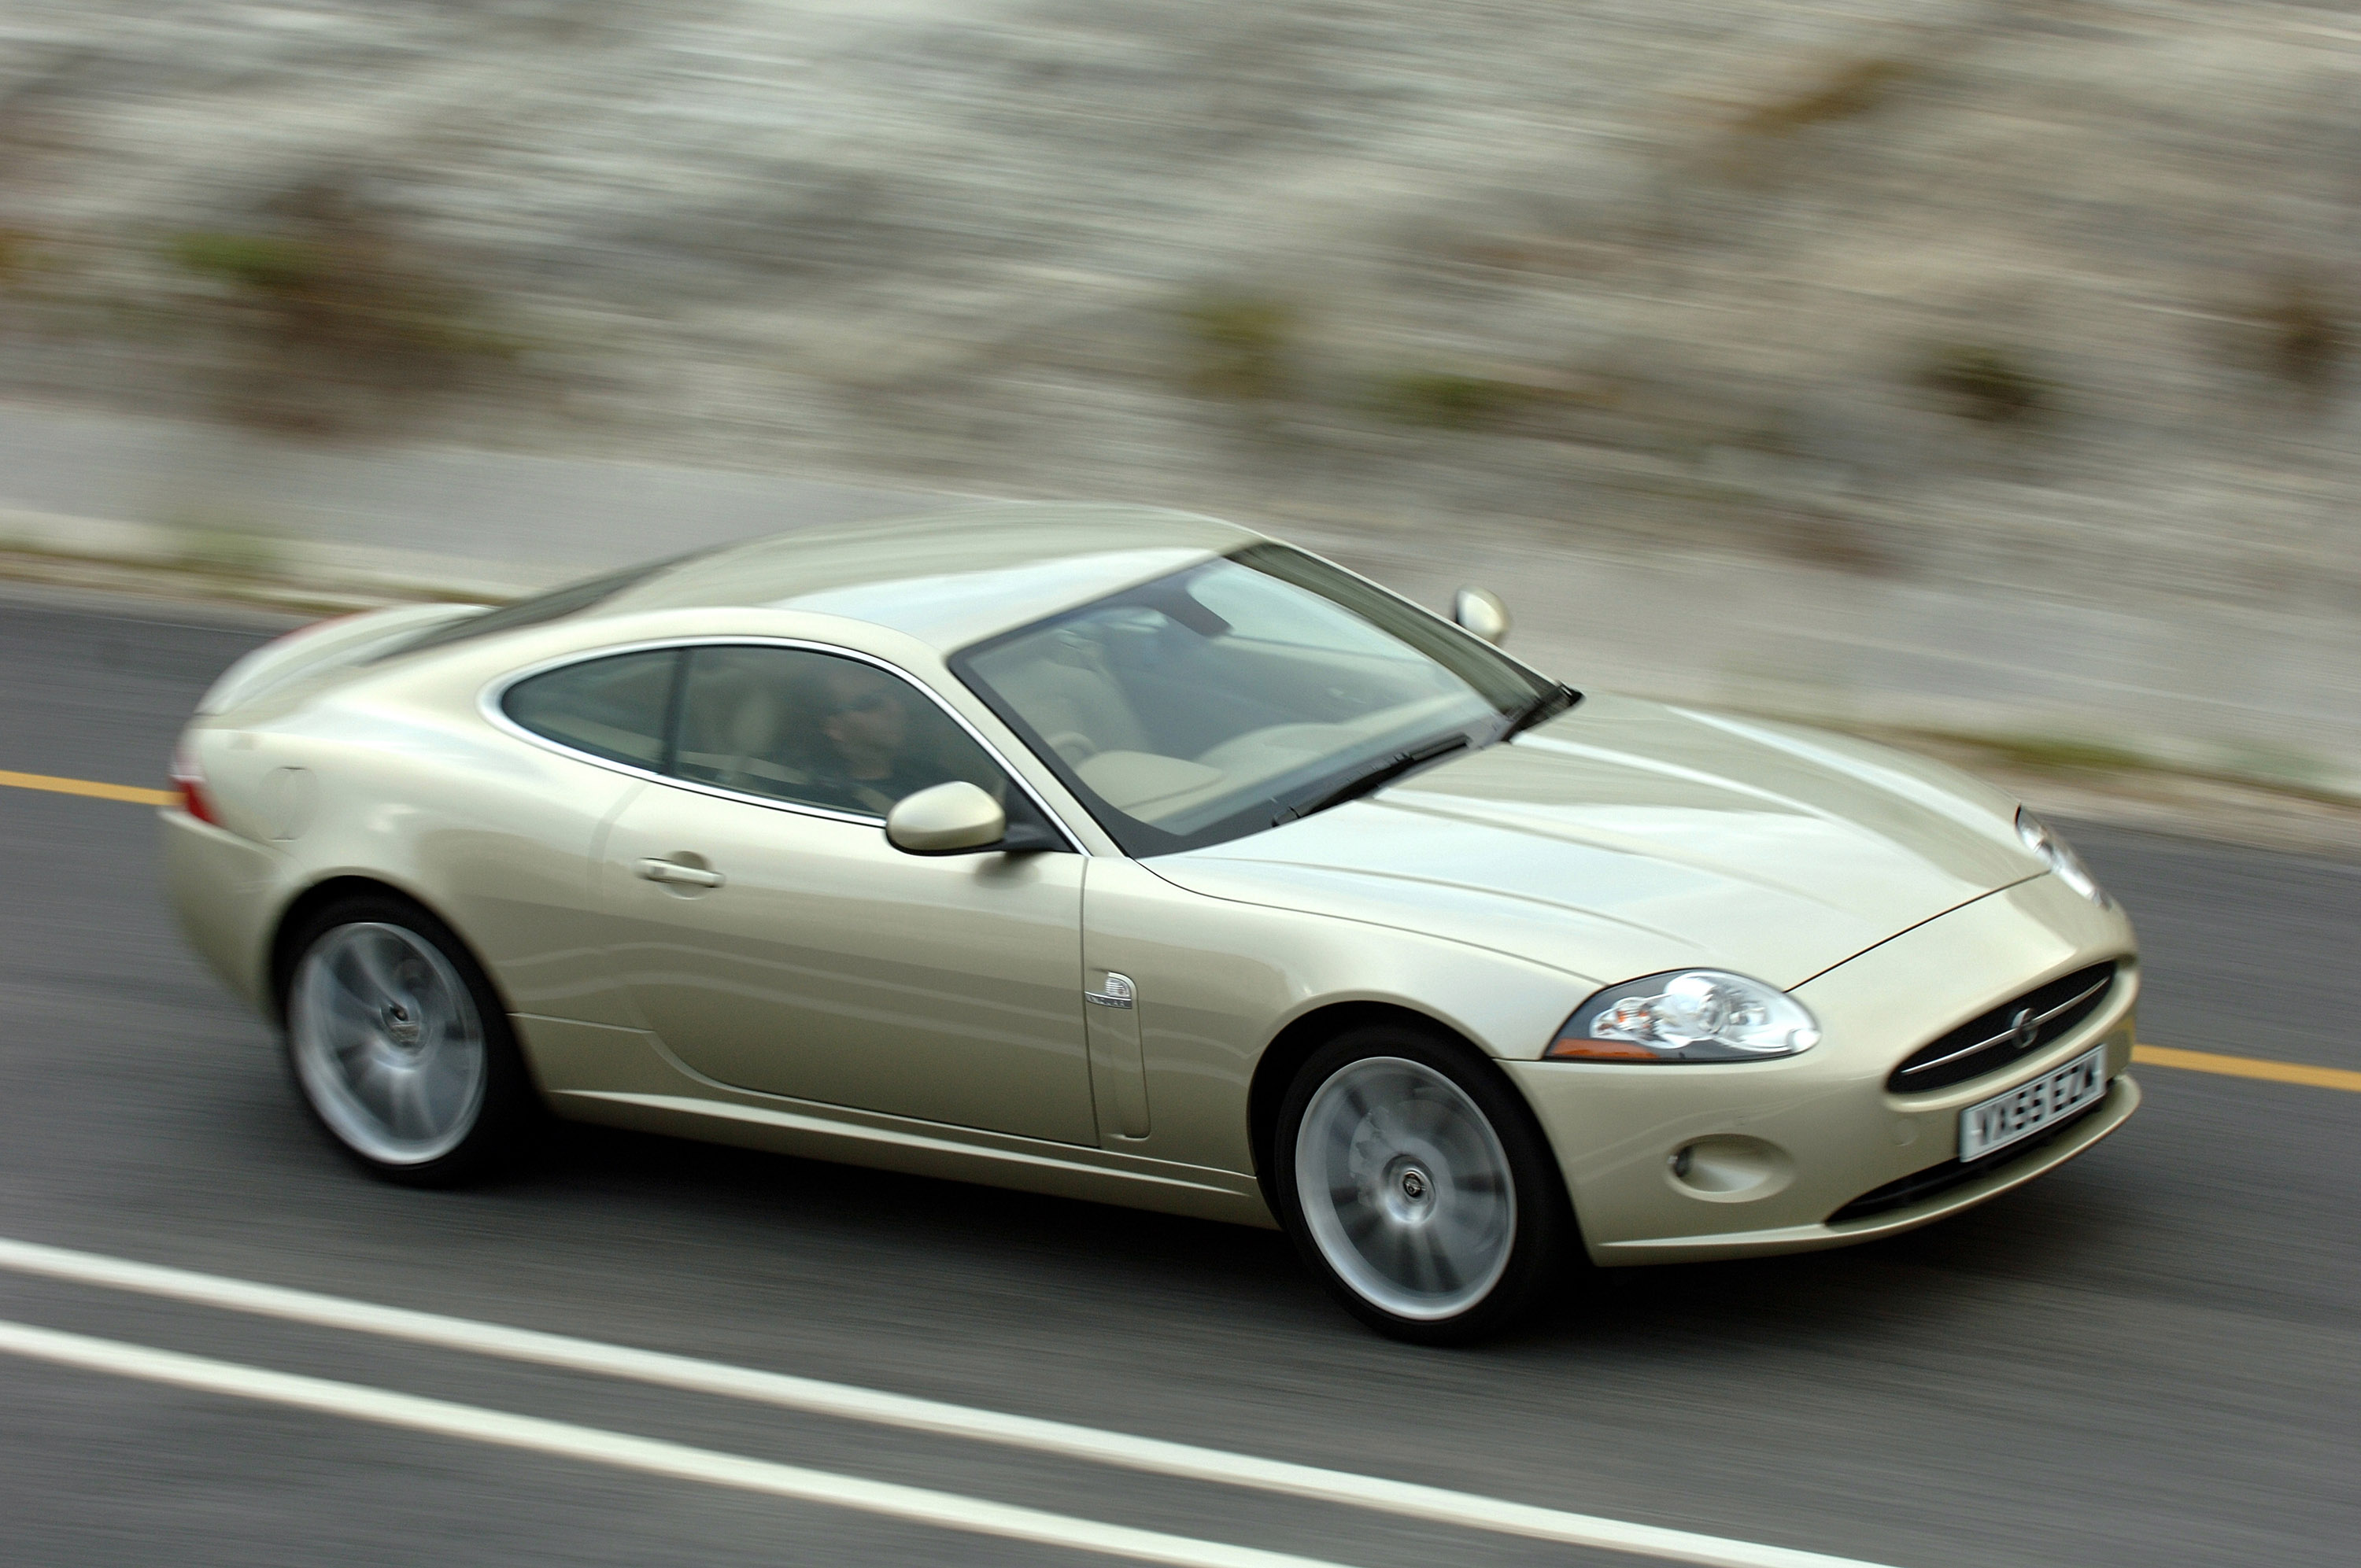 Jaguar Cars News The New Jaguar Xk Most Exciting Car To Be Launched In